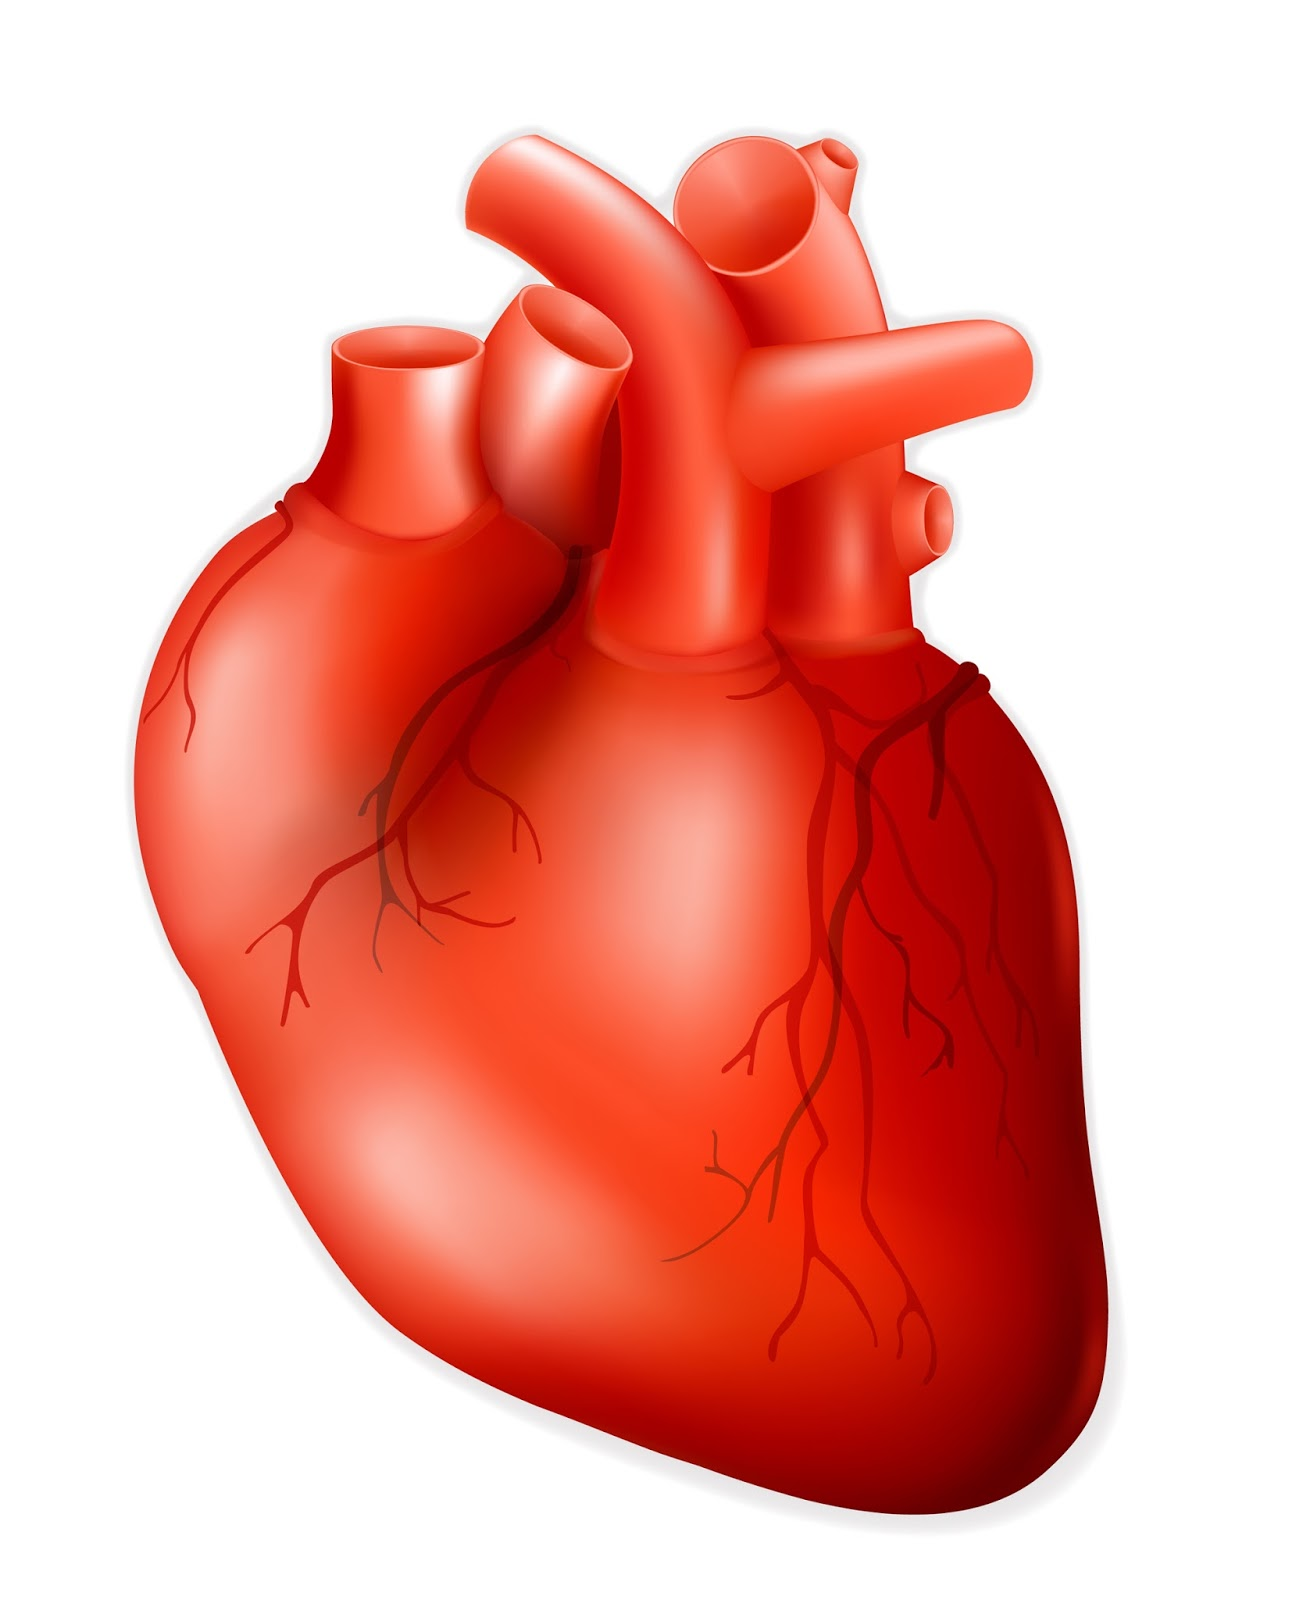 realistic heart diagram wiring for 3 gang 2 way light switch free real human hearts download clip art